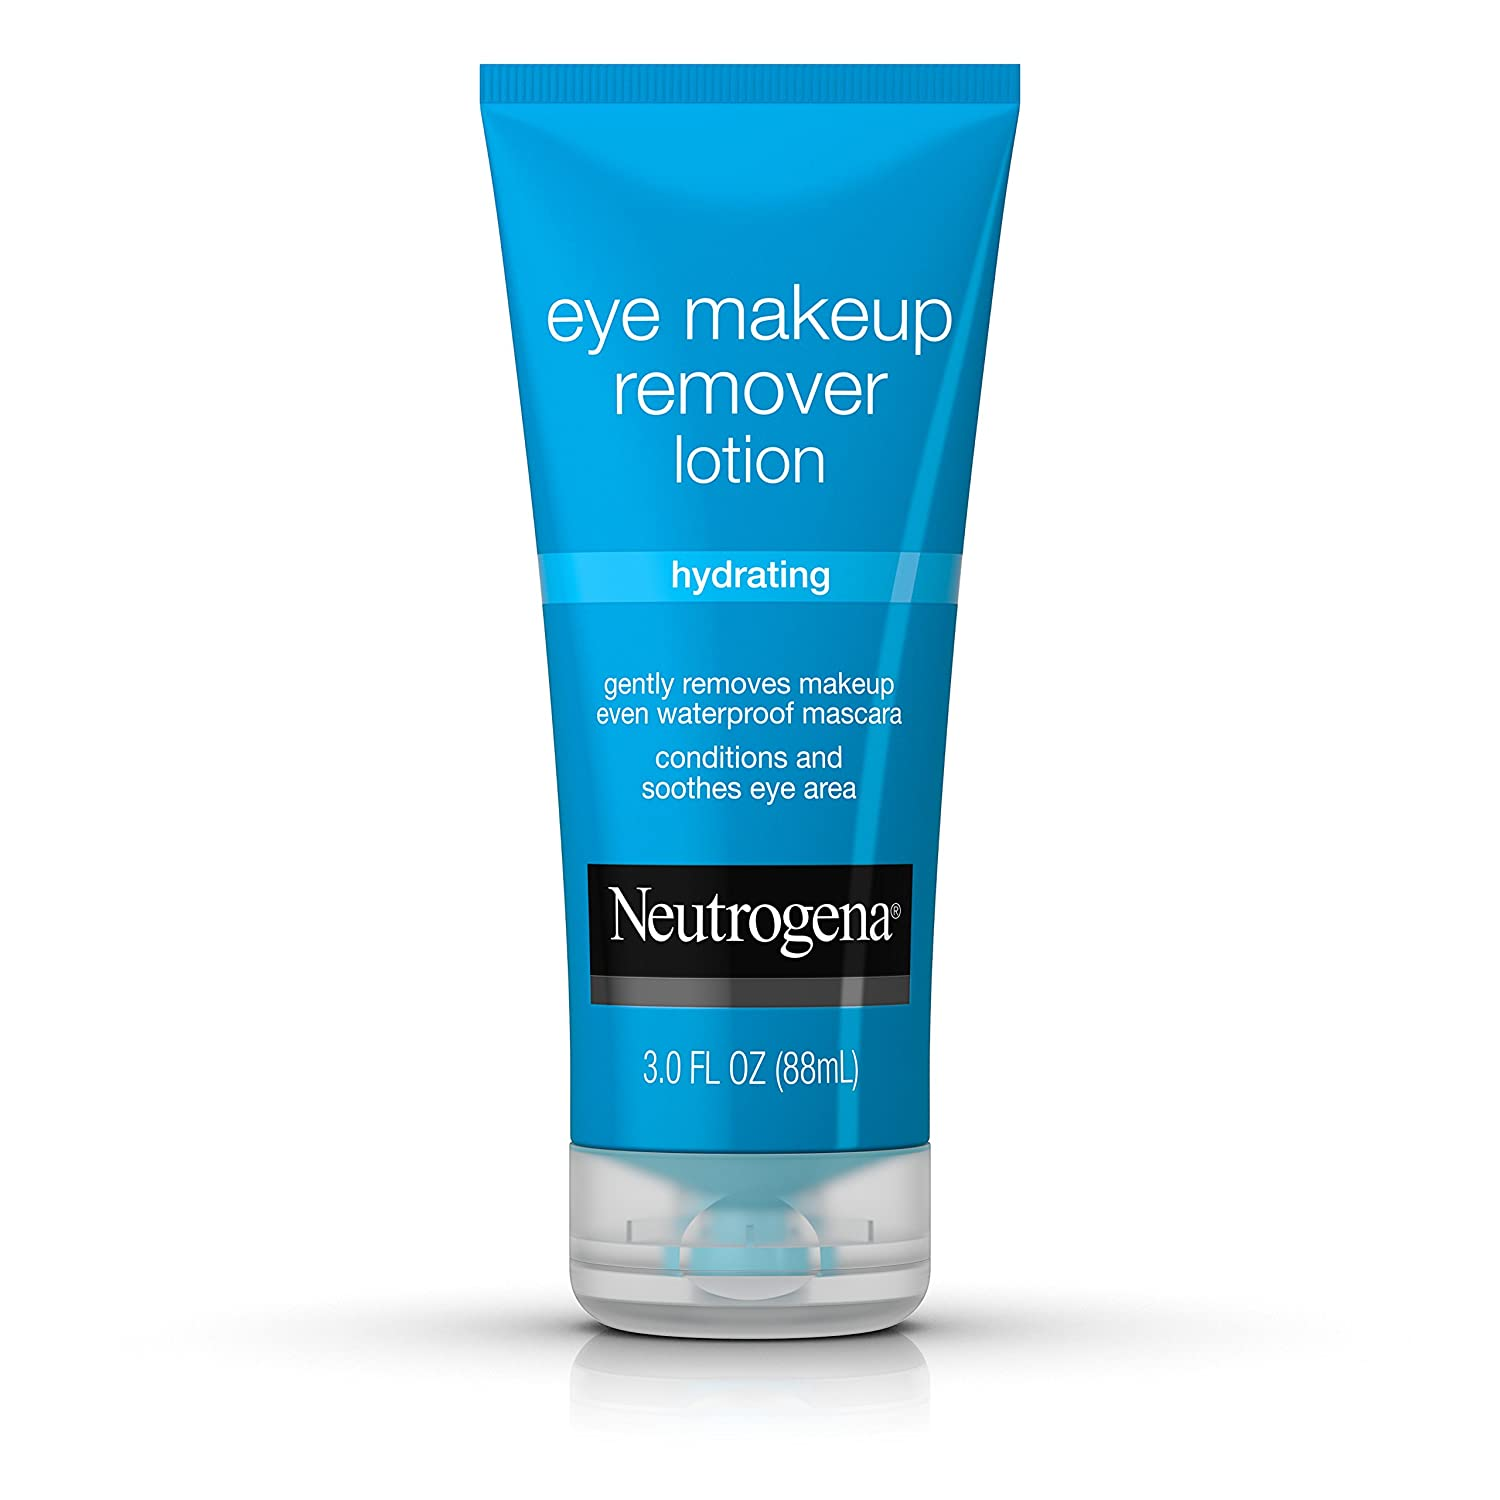 Neutrogena Hydrating Eye Makeup Remover Lotion, 3 Oz. J&J426254